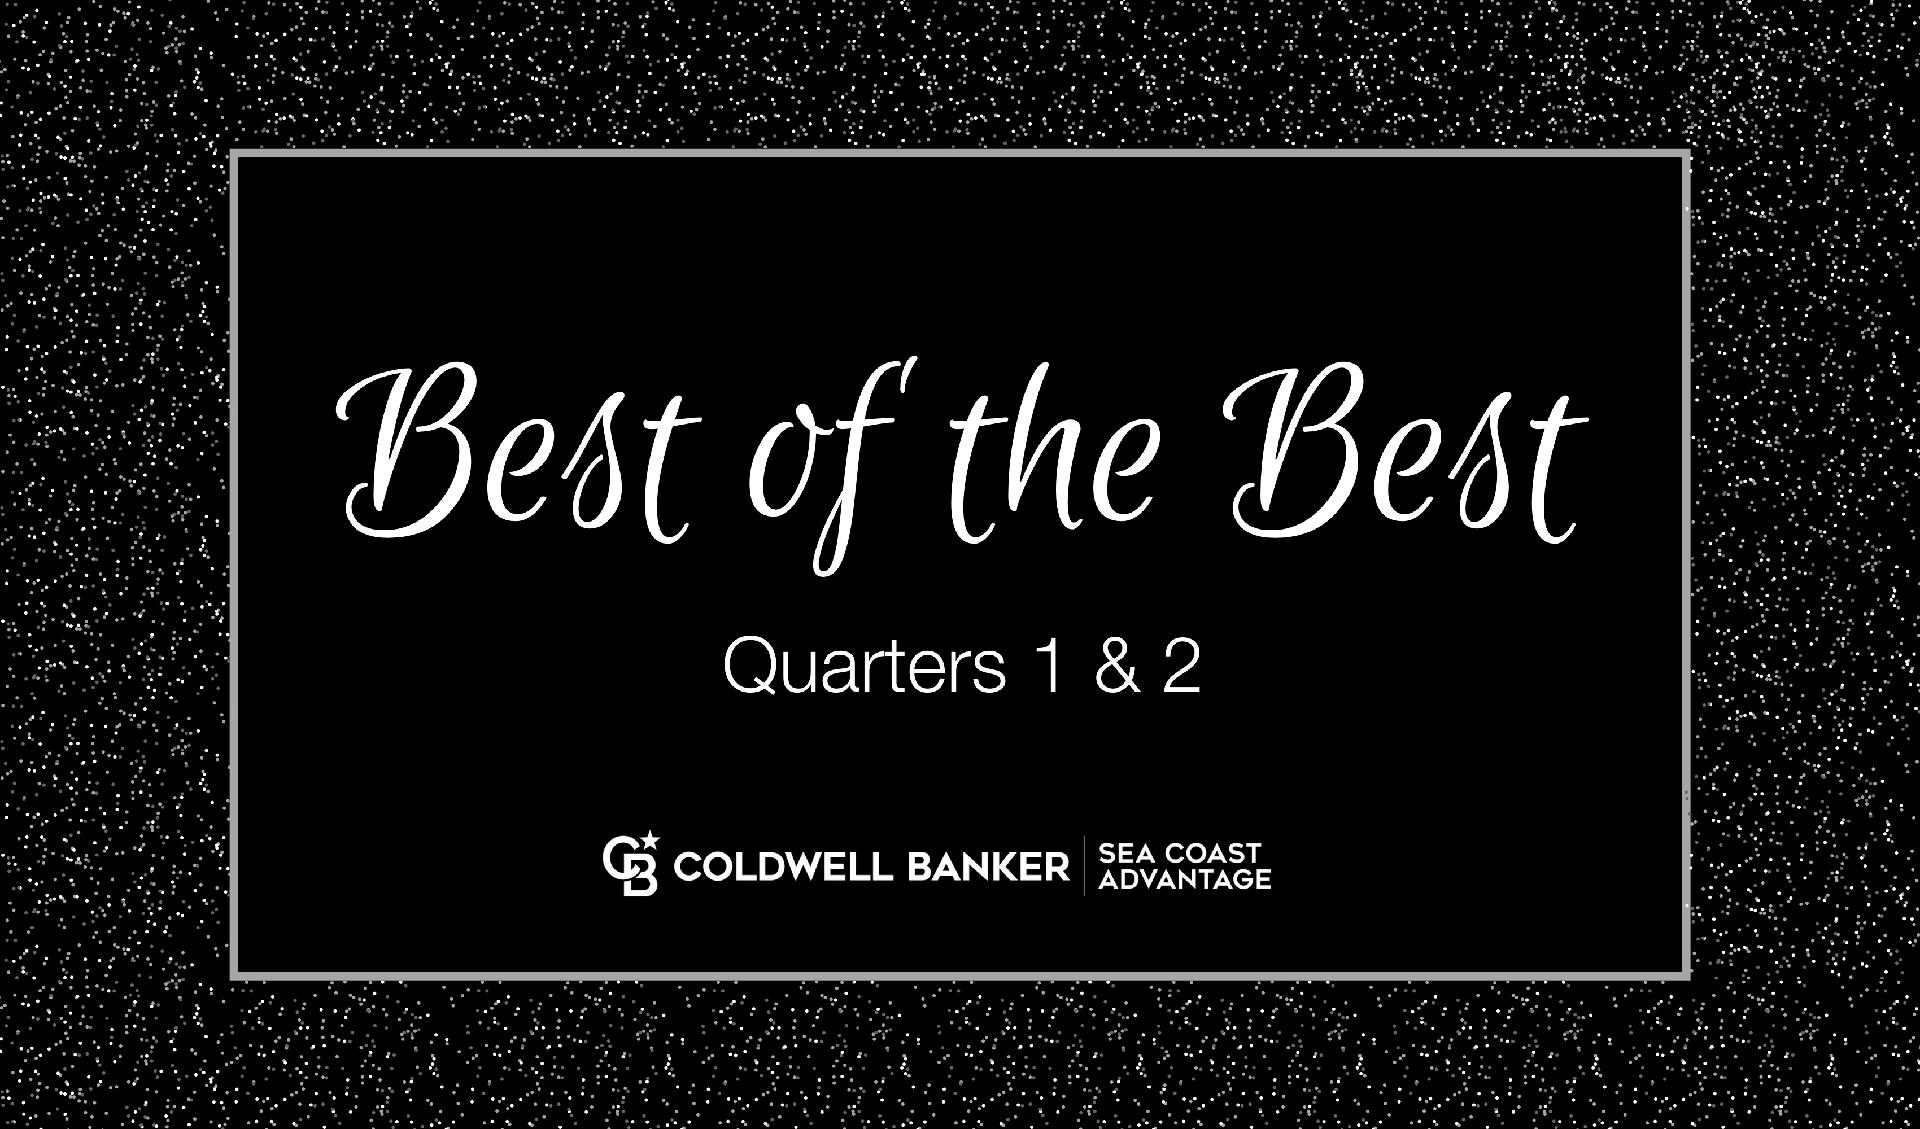 Congratulations to the Best of the Best Award Winners! Quarters 1 & 2 - 2021 Picture